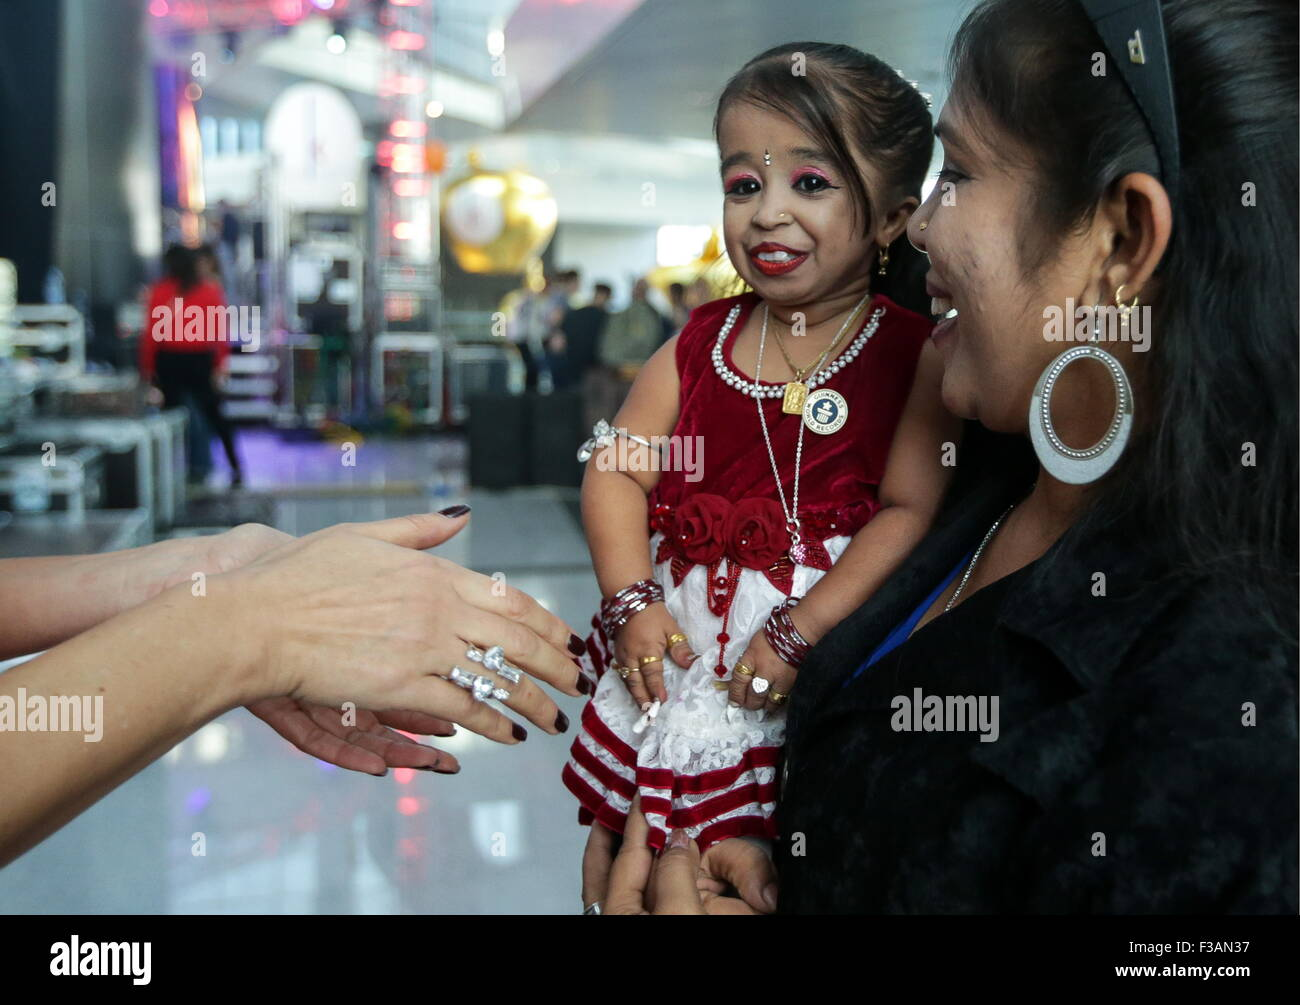 Moscow, Russia. 3rd Oct, 2015. World's shortest woman Jyoti Amge, 62.8cm, attends the opening ceremony of Moscow's - Stock Image